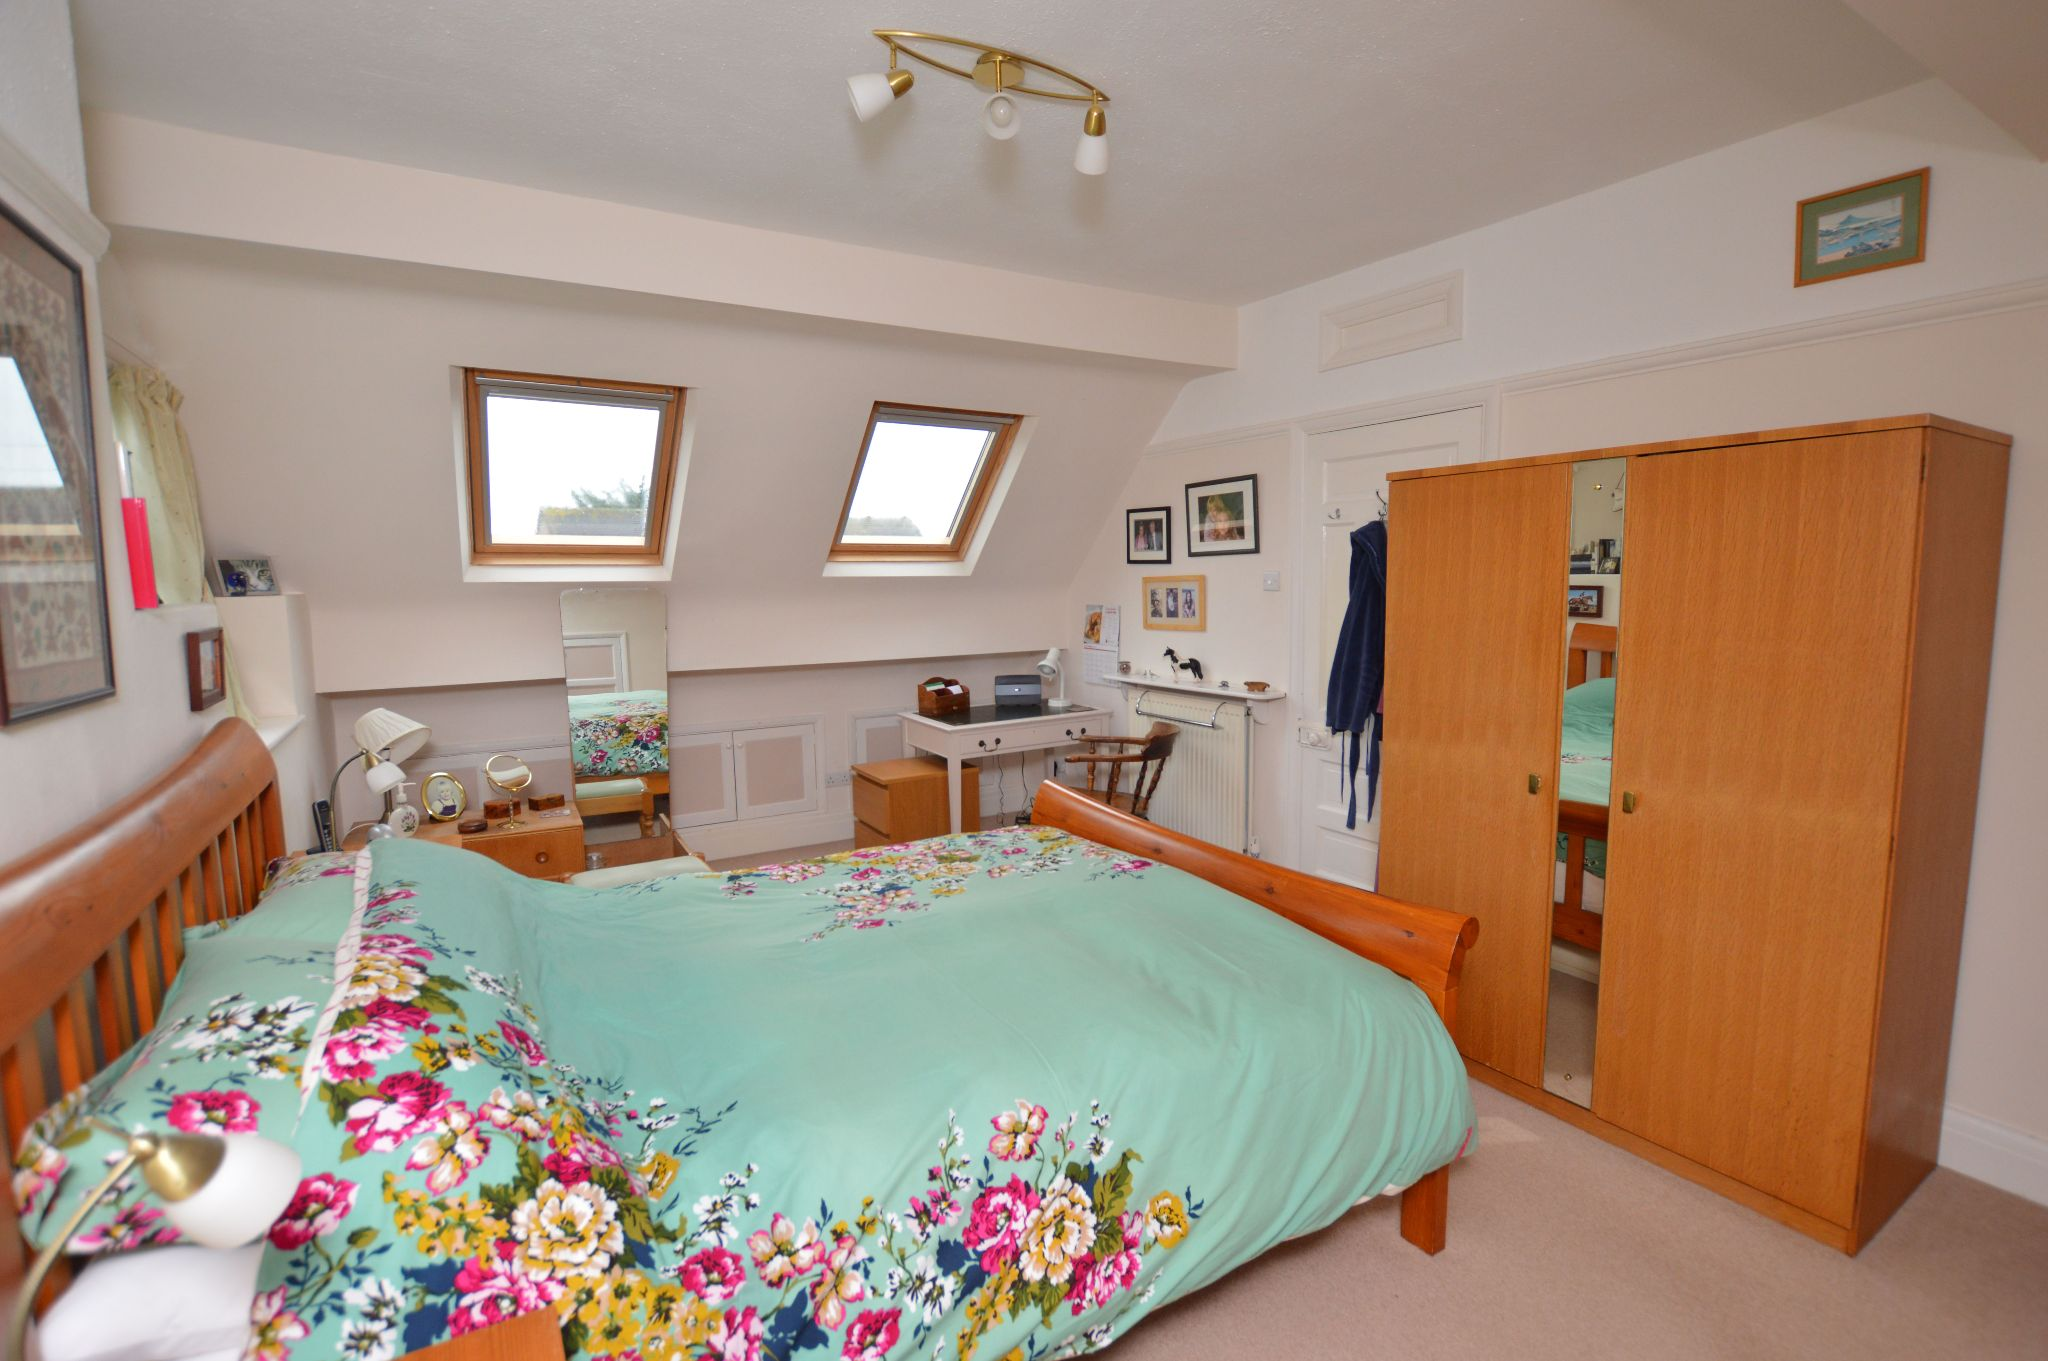 4 bedroom detached bungalow For Sale in Abergele - Bedroom 1 View 2